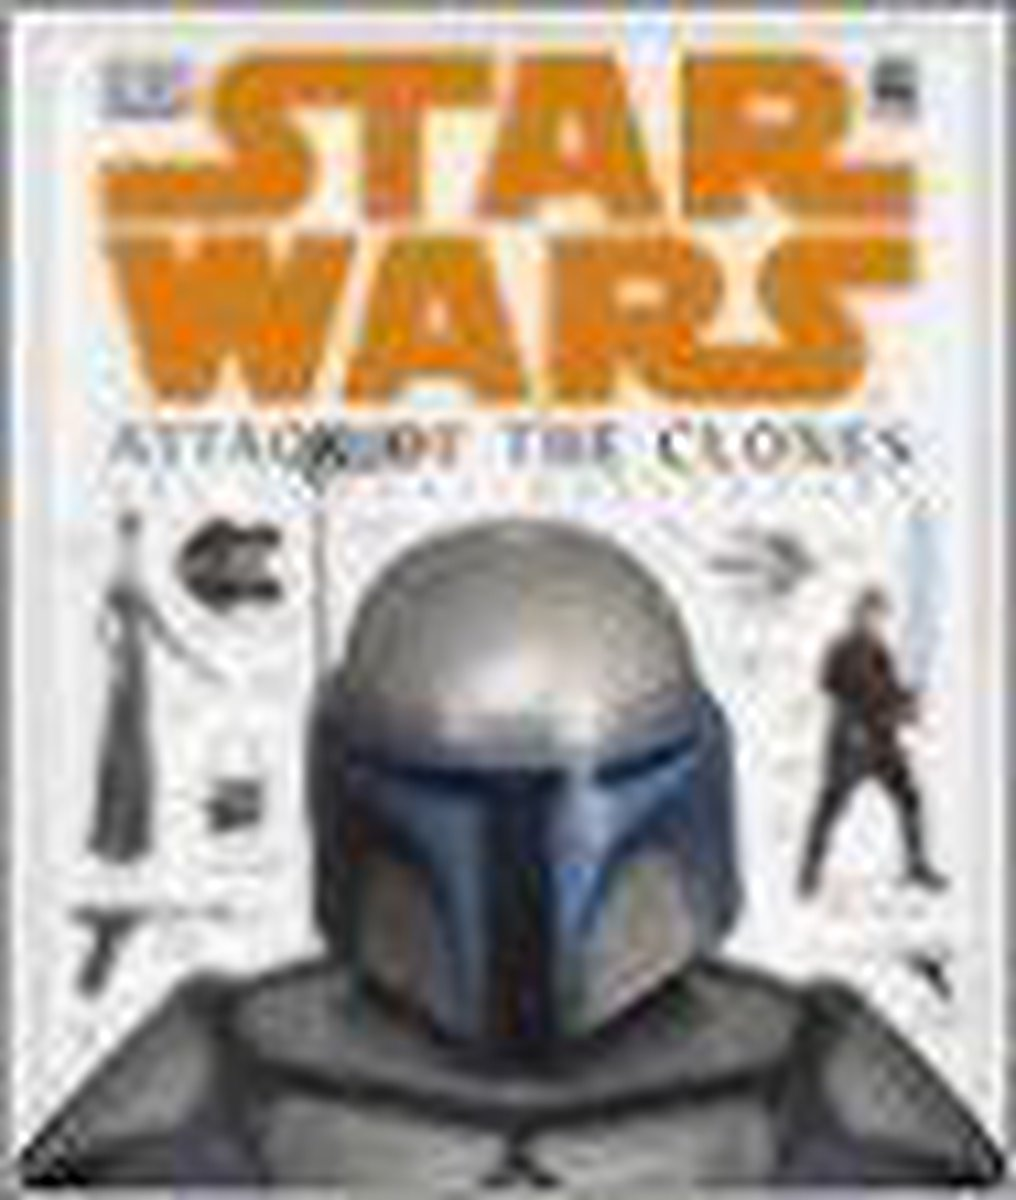 Star Wars Episode II The Visual Dictionary